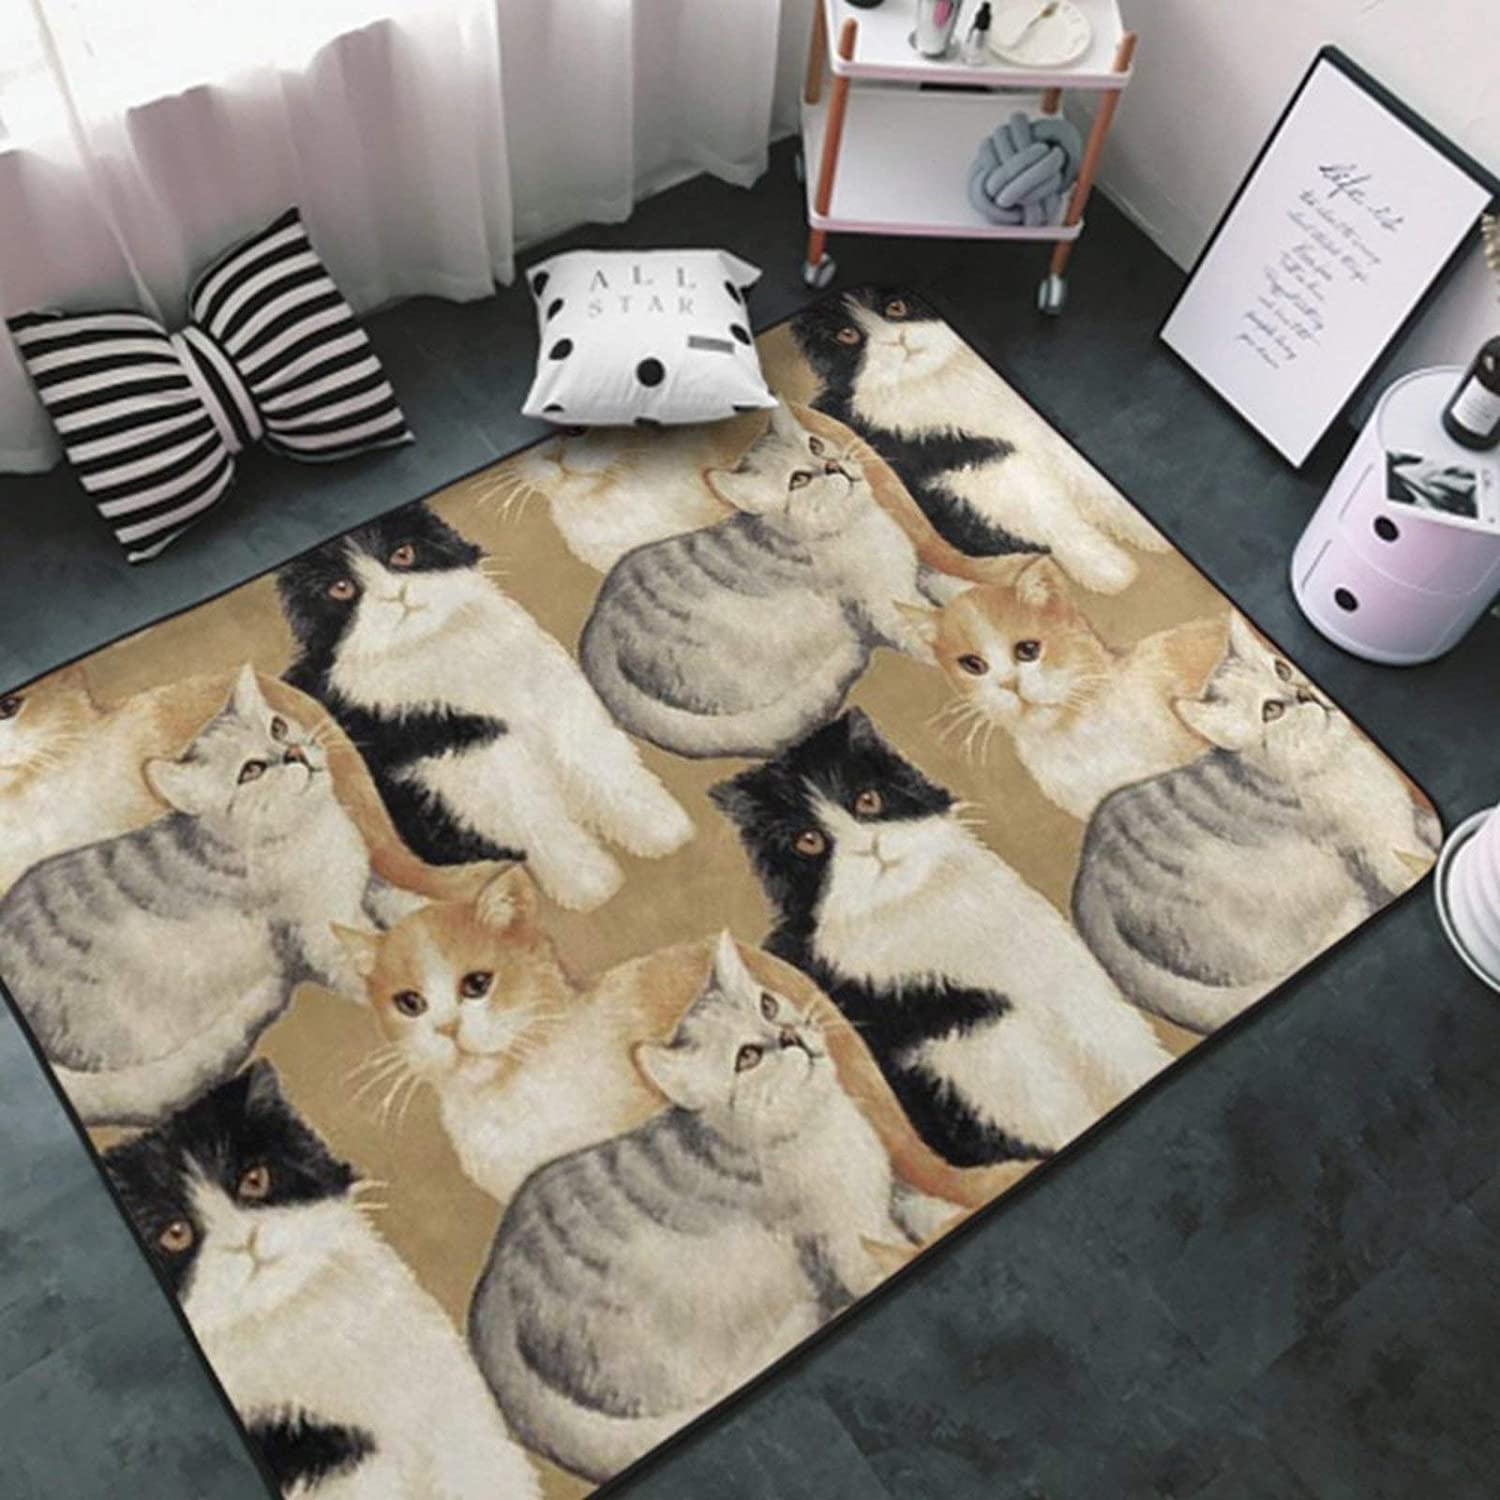 Area Rug Indoor Carpet Non-Slip Stylish Area Carpet for Living Room, Bedroom, Kitchen, Bathroom Cozy Carpets White-Cat Breeds Packed Cats1 Rug